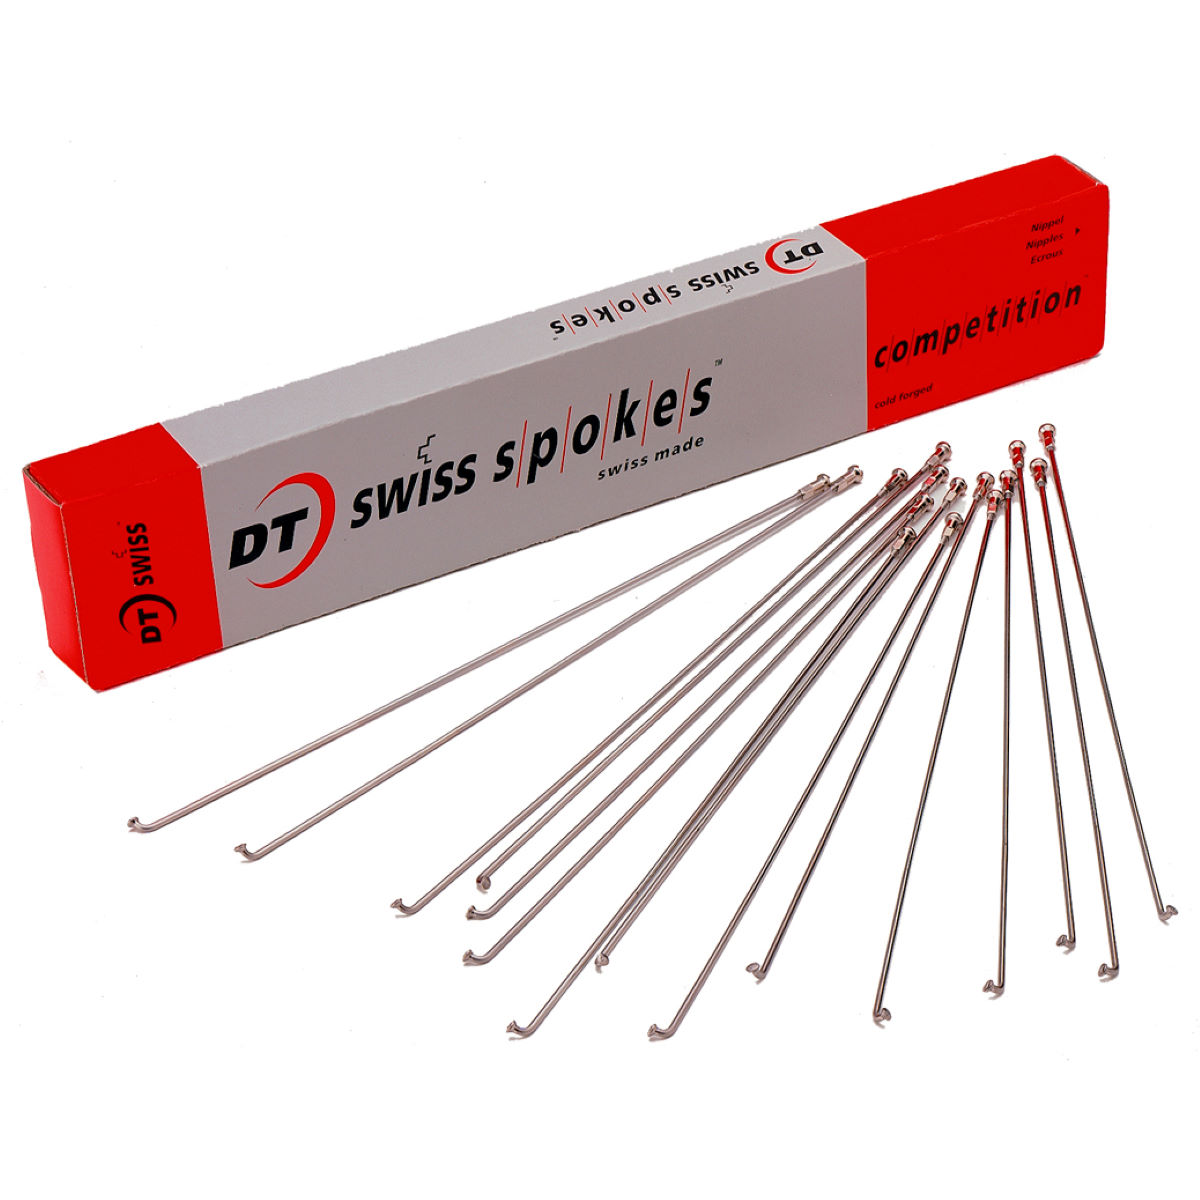 DT Swiss Champion PG Silver Spokes - 18 Pack - Radios